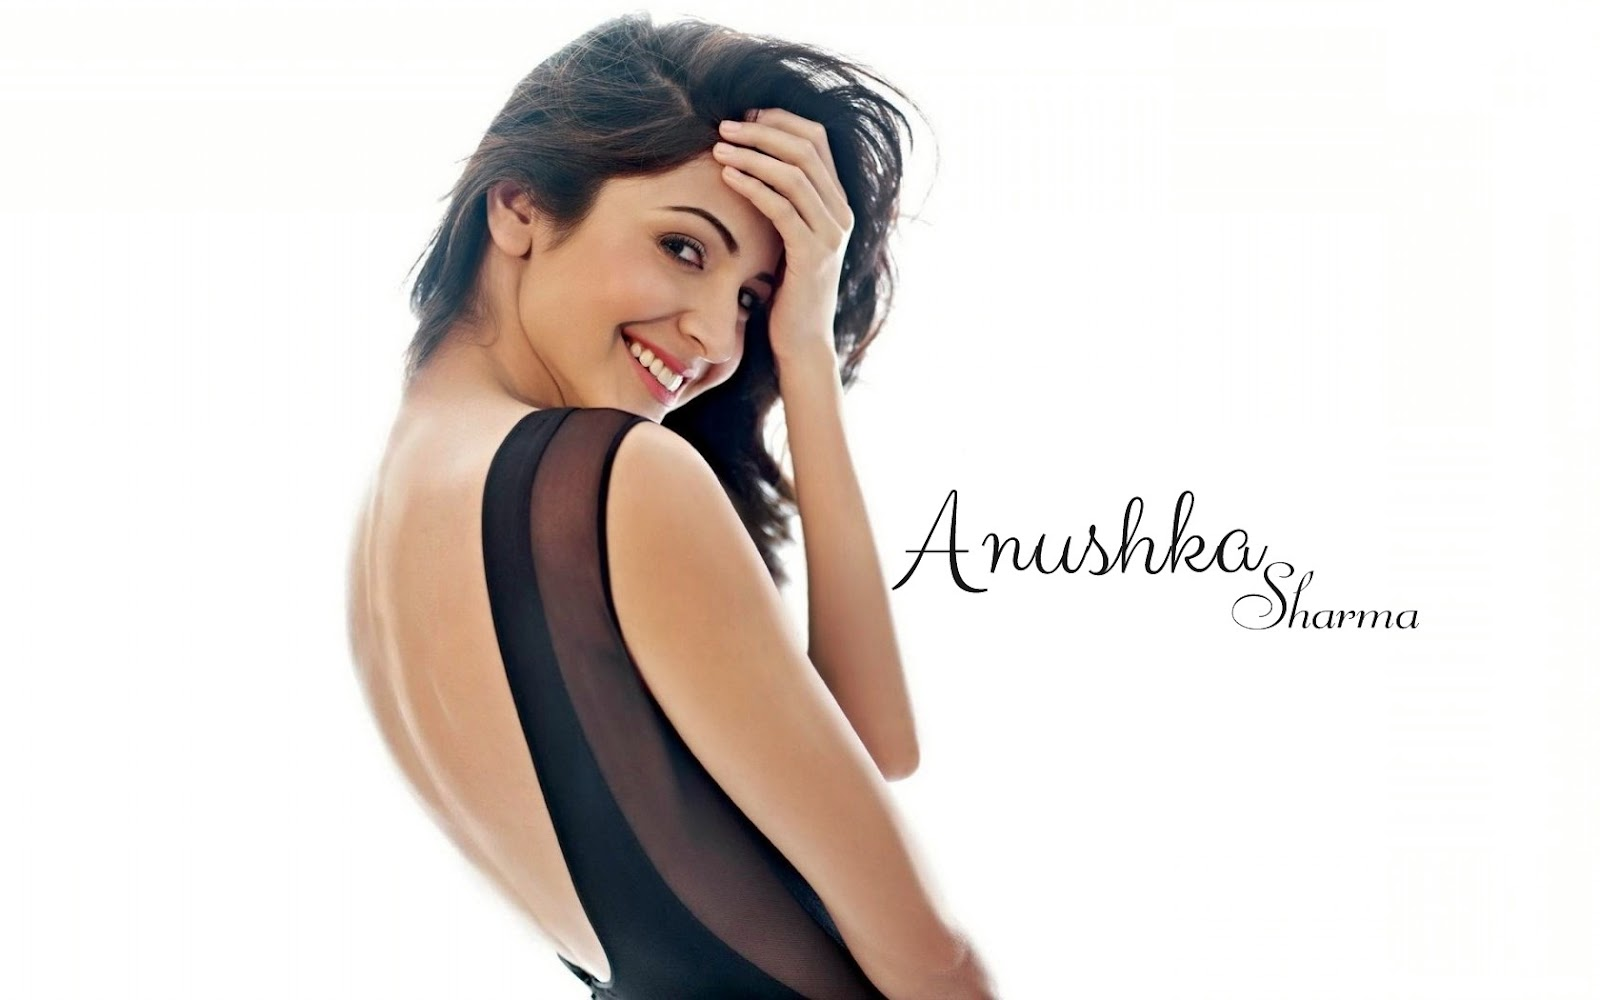 Anushka Sharma Hot  Sexy Bikini Hd Wallpaper  Images -6312